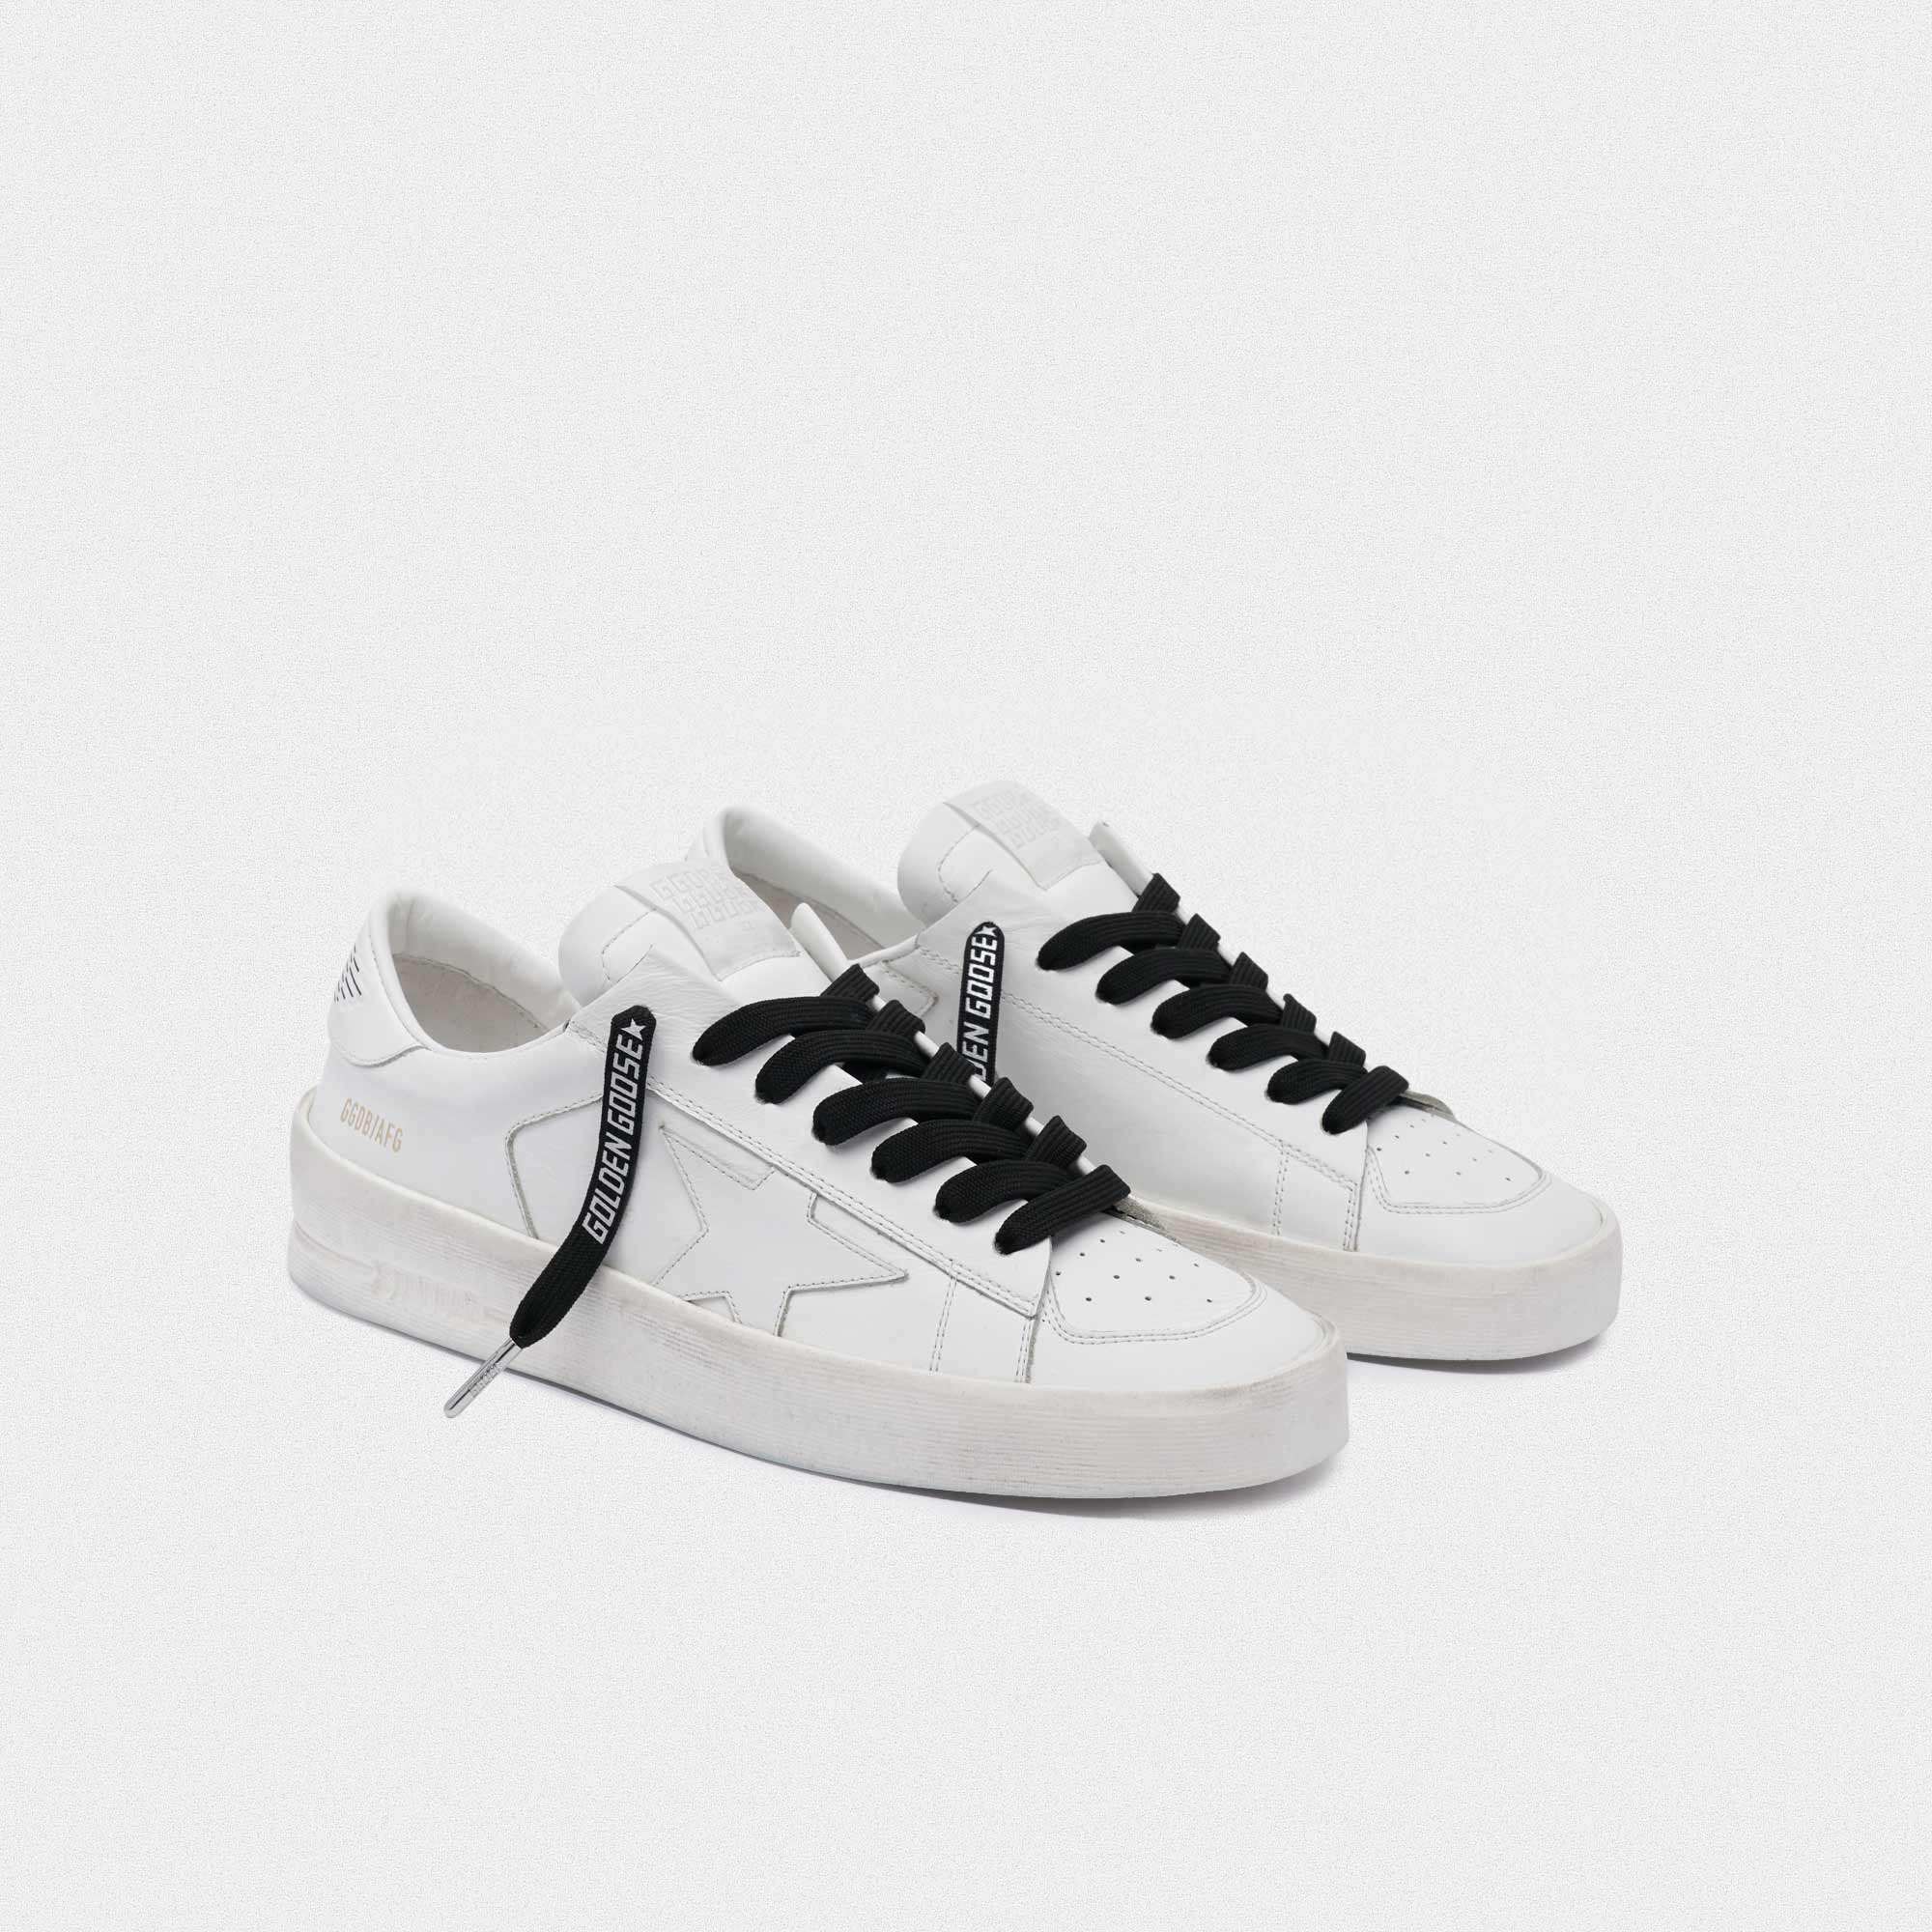 Golden Goose - Women's black laces with reflective logo in